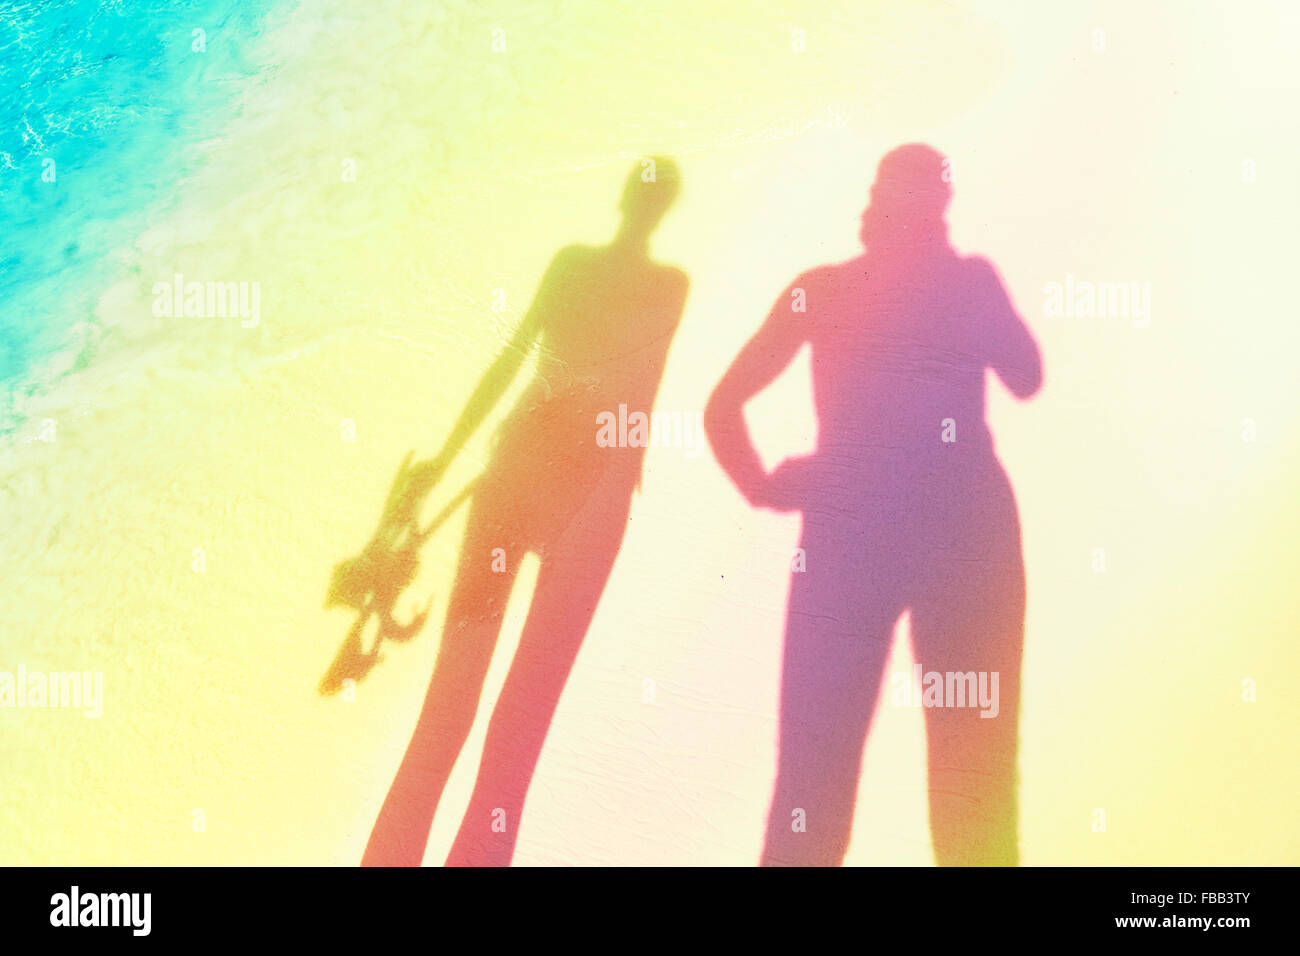 Stylized silhouettes of woman holding snorkeling equipment and man on the beach. - Stock Image